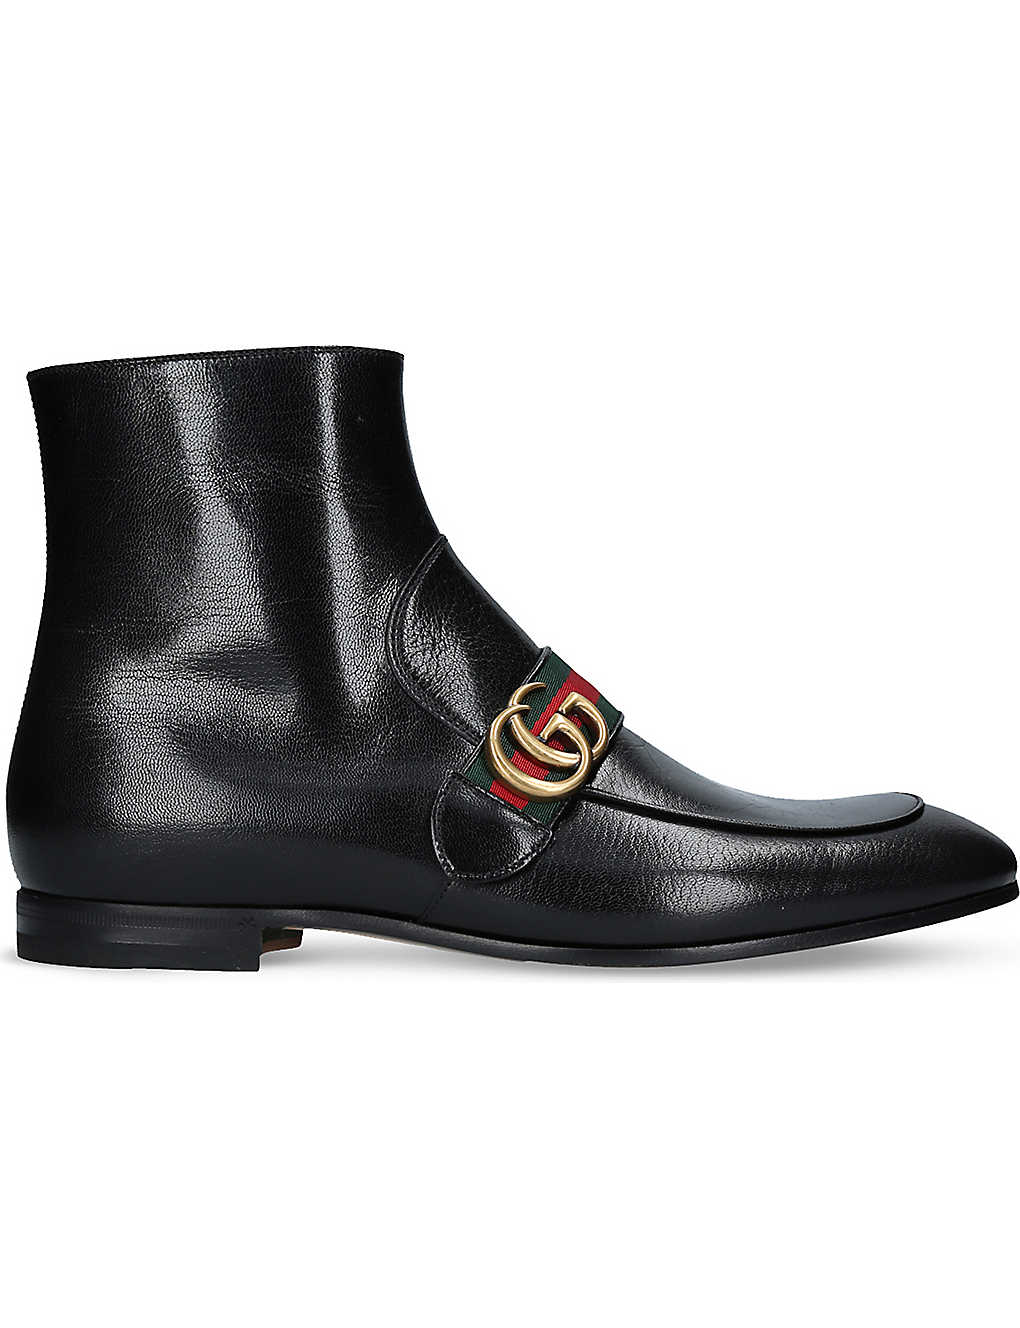 55c19e06ab6 GUCCI - Donnie logo-detail leather ankle boots